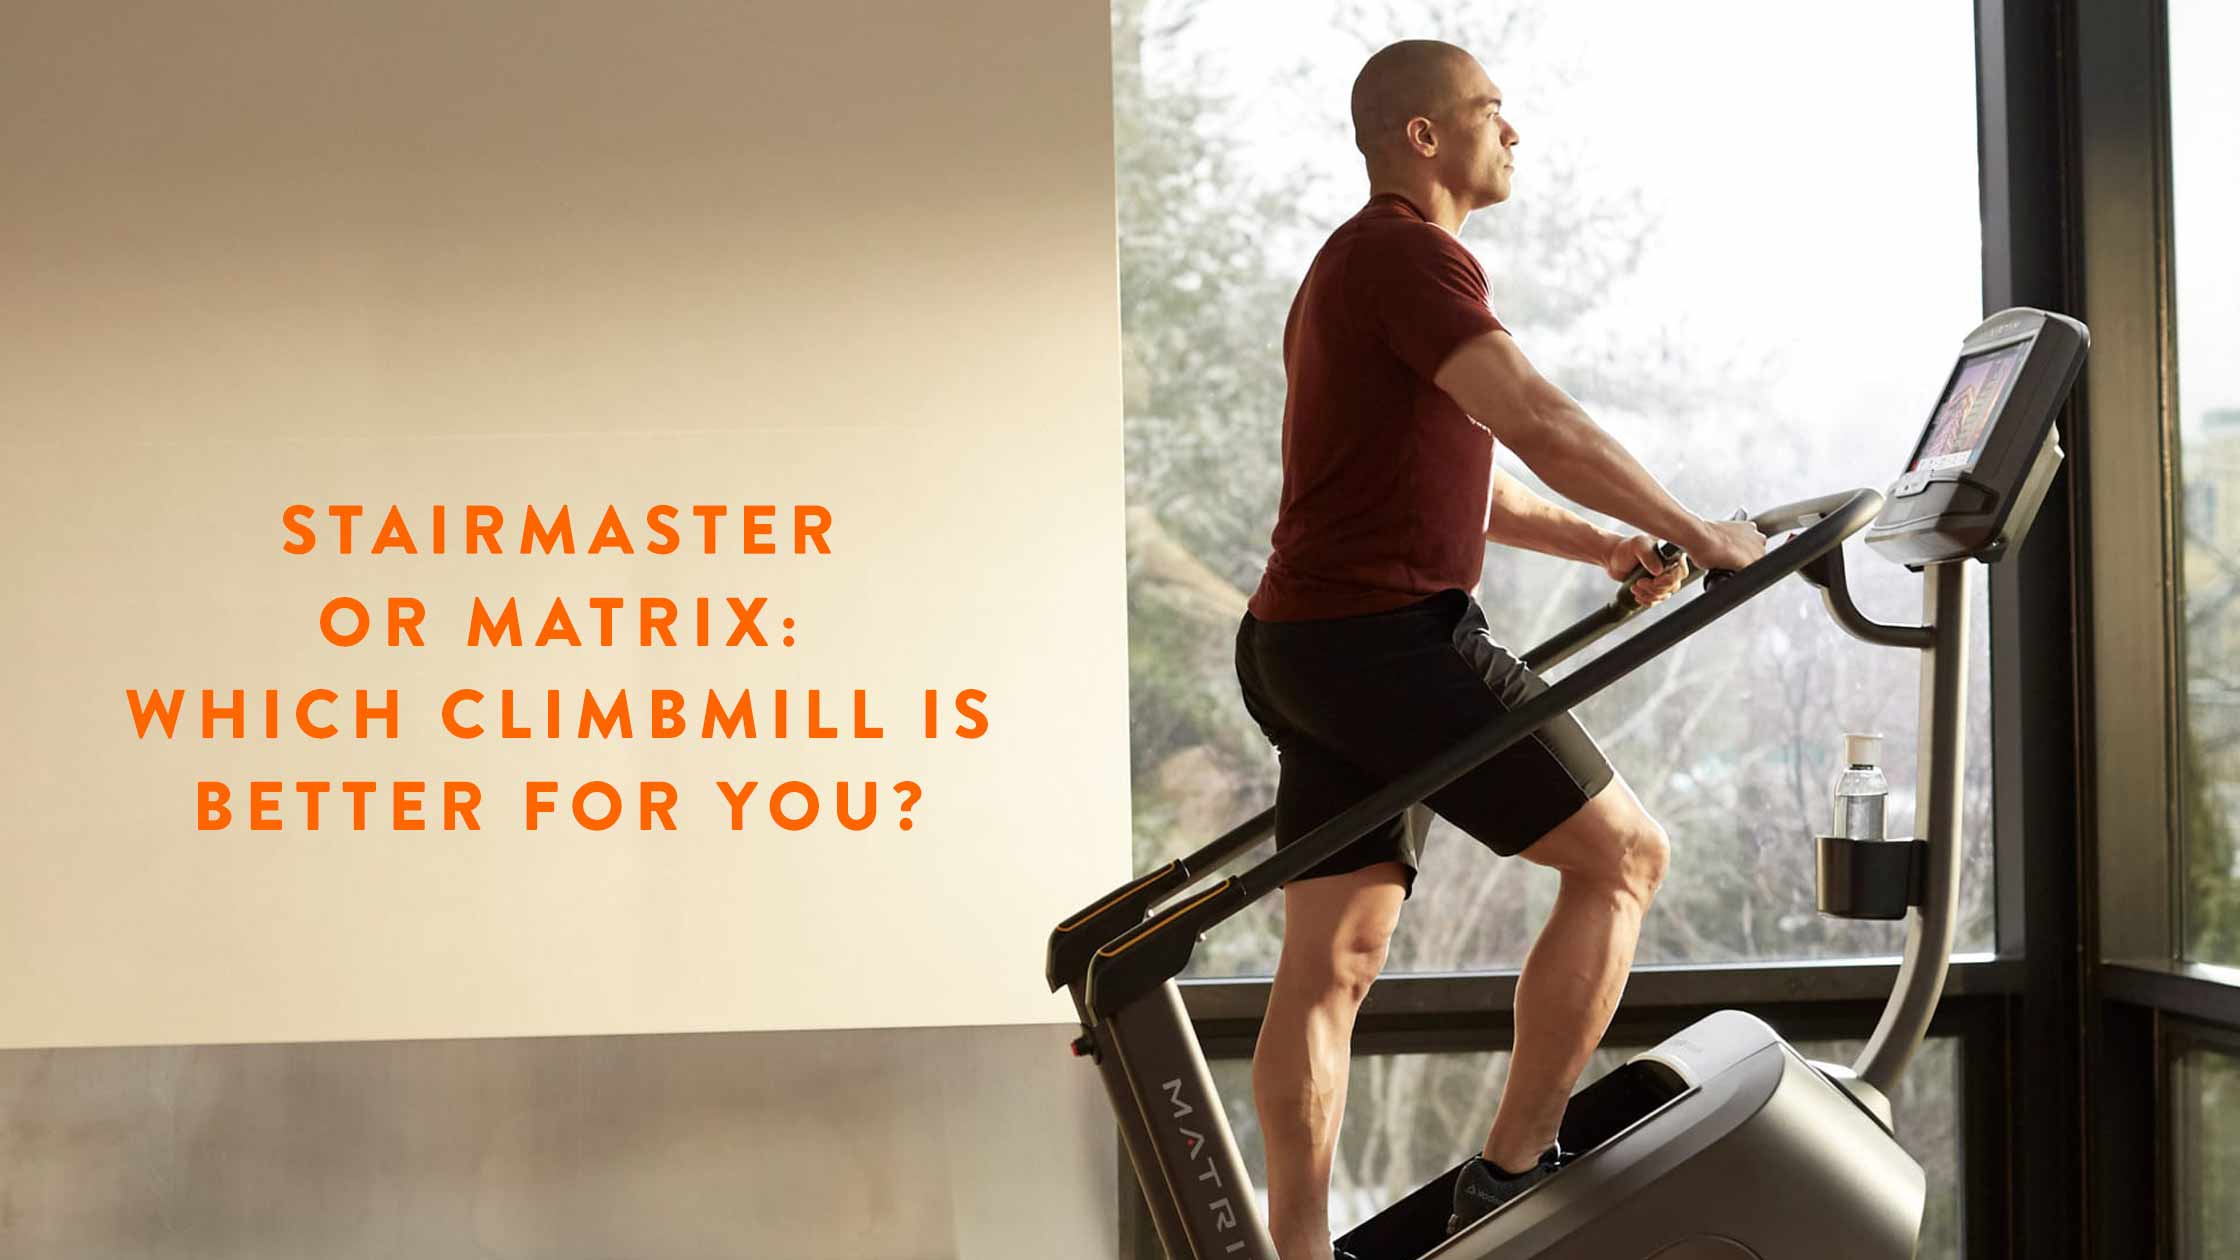 Stairmaster 8 Series Gauntlet or Matrix C50 Climbmill:  Which one is better for you